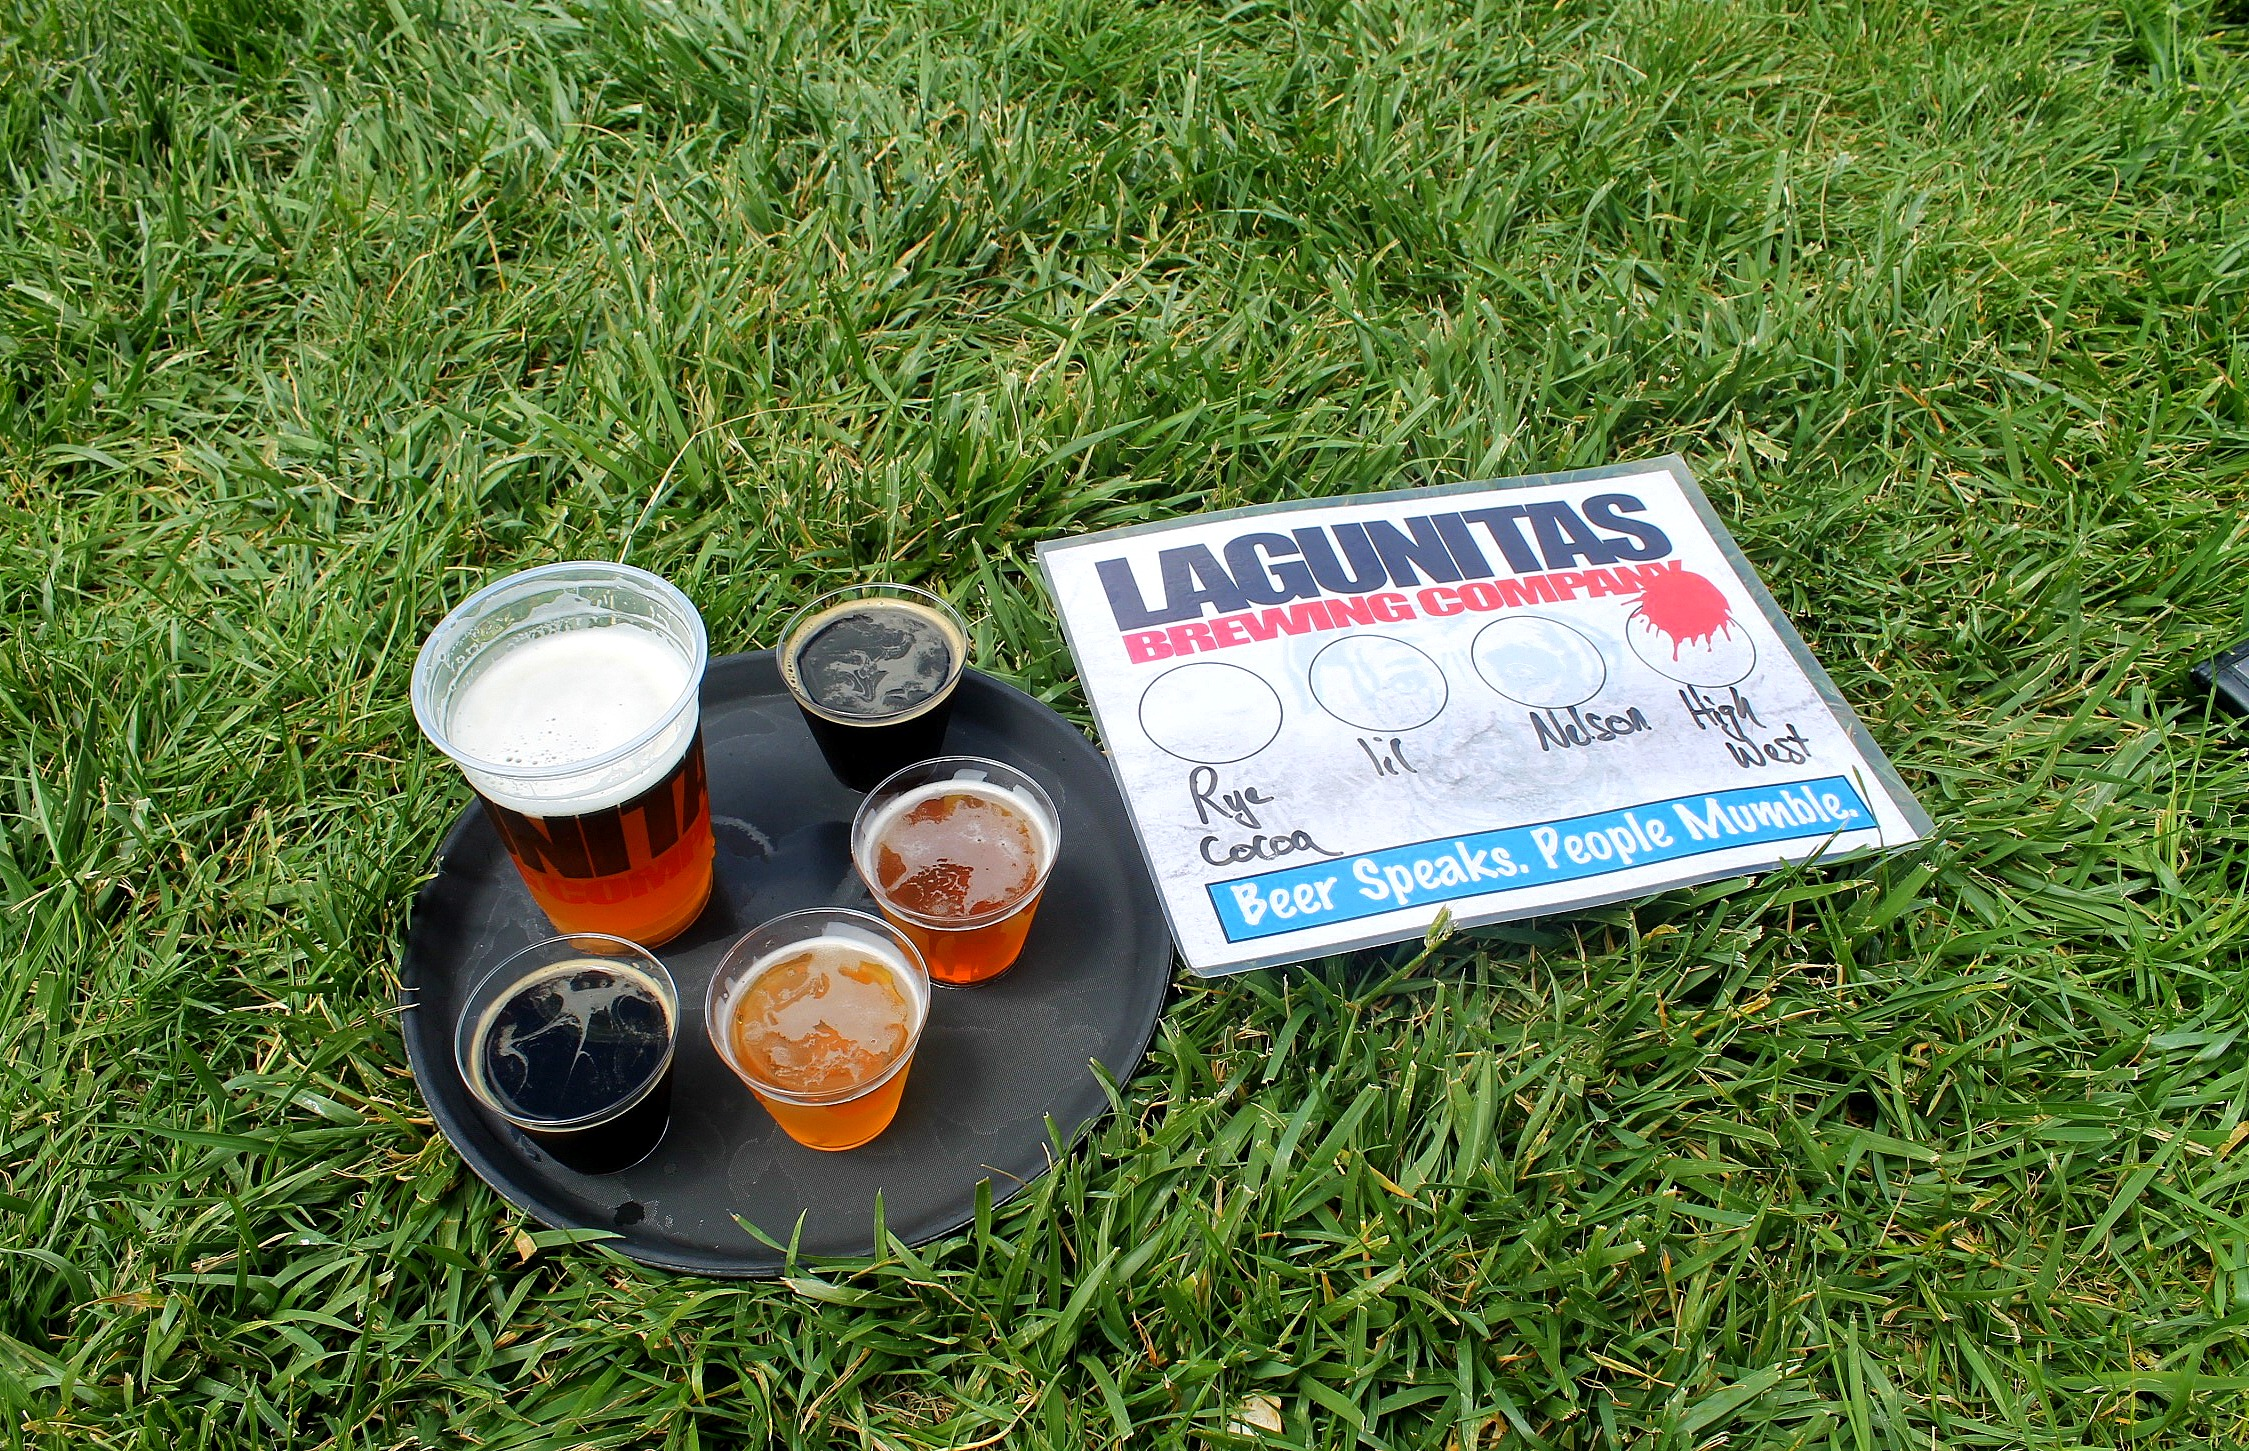 Lagunitas Brewing - Petaluma, California - Sonoma County Breweries